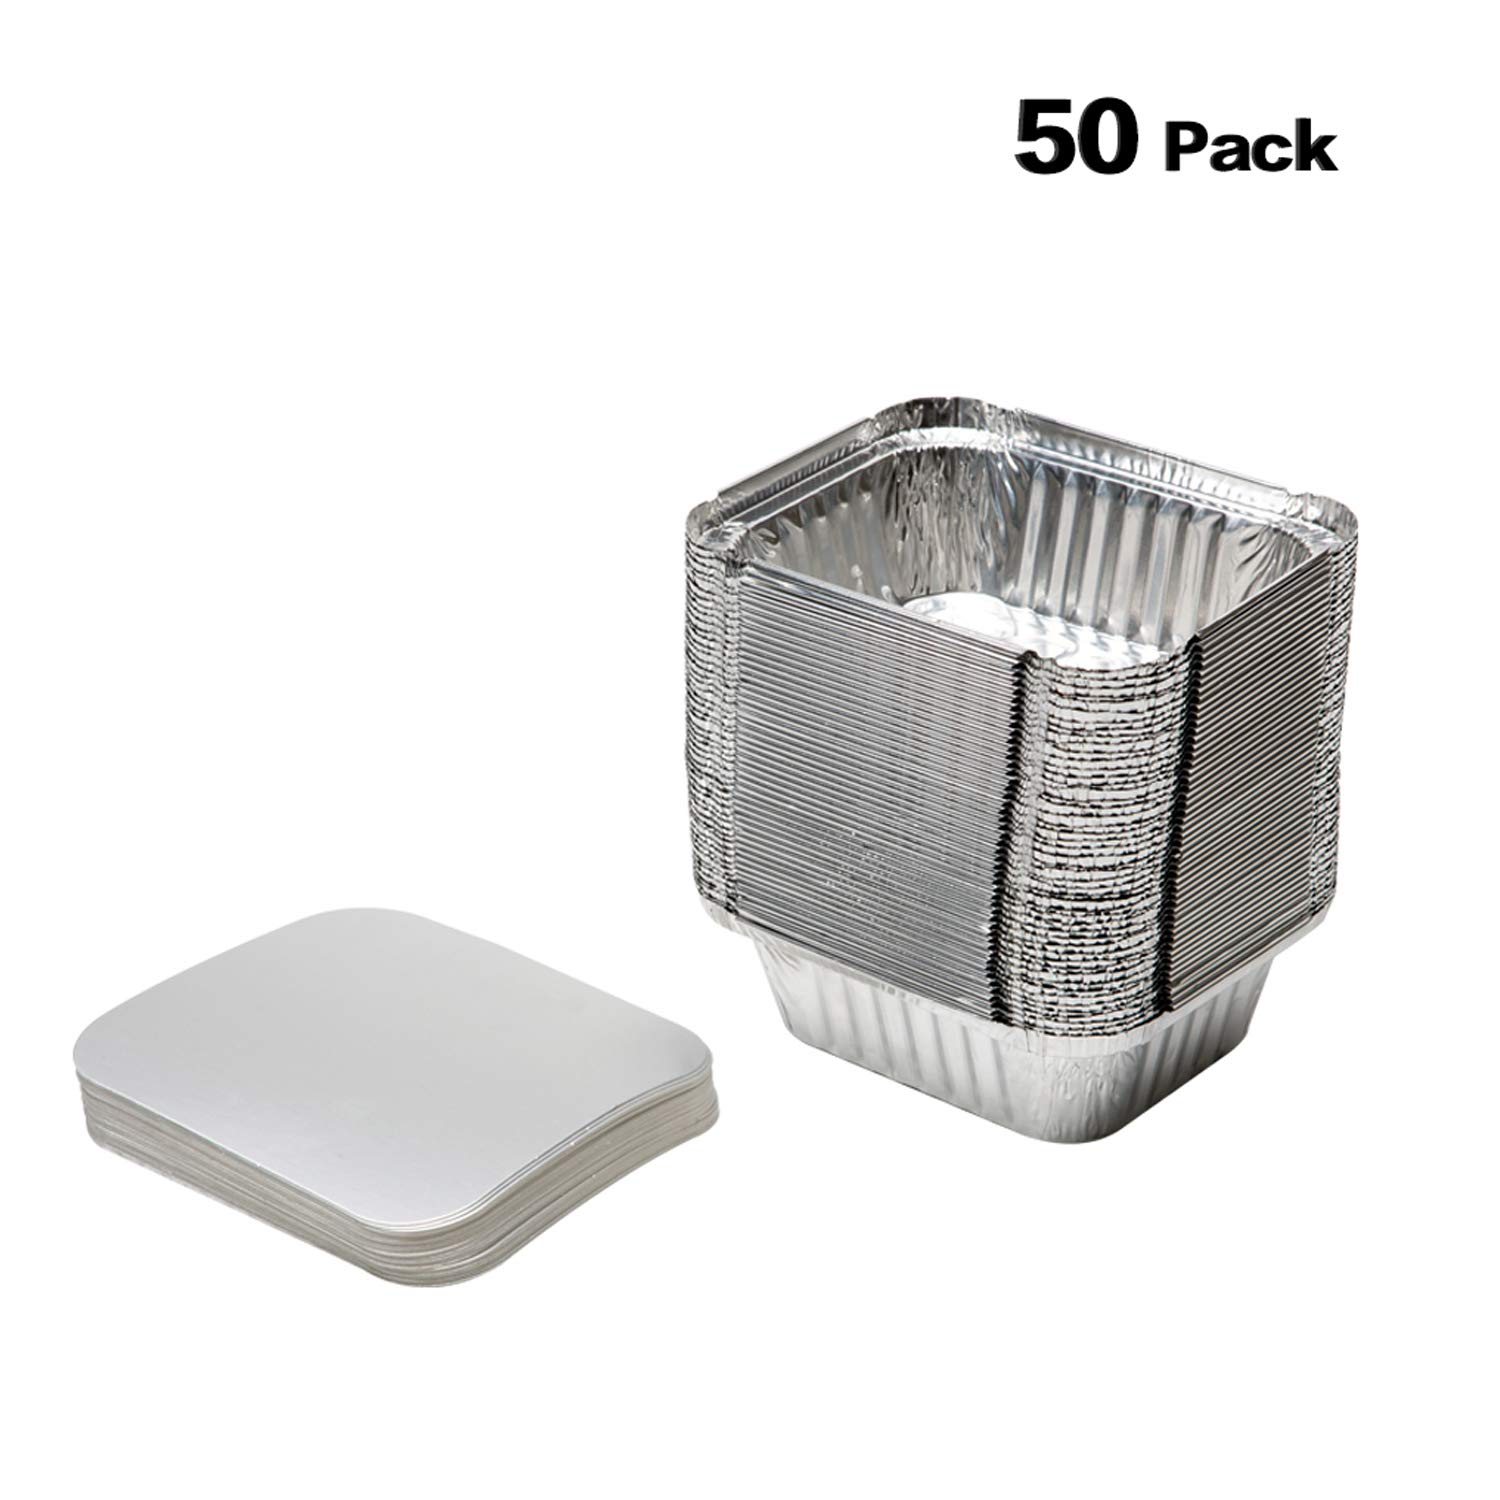 XIAFEI New Disposable Durable Aluminum Oblong Foil Pan, Take-Out Pans, Pack of 50 With Board Lids